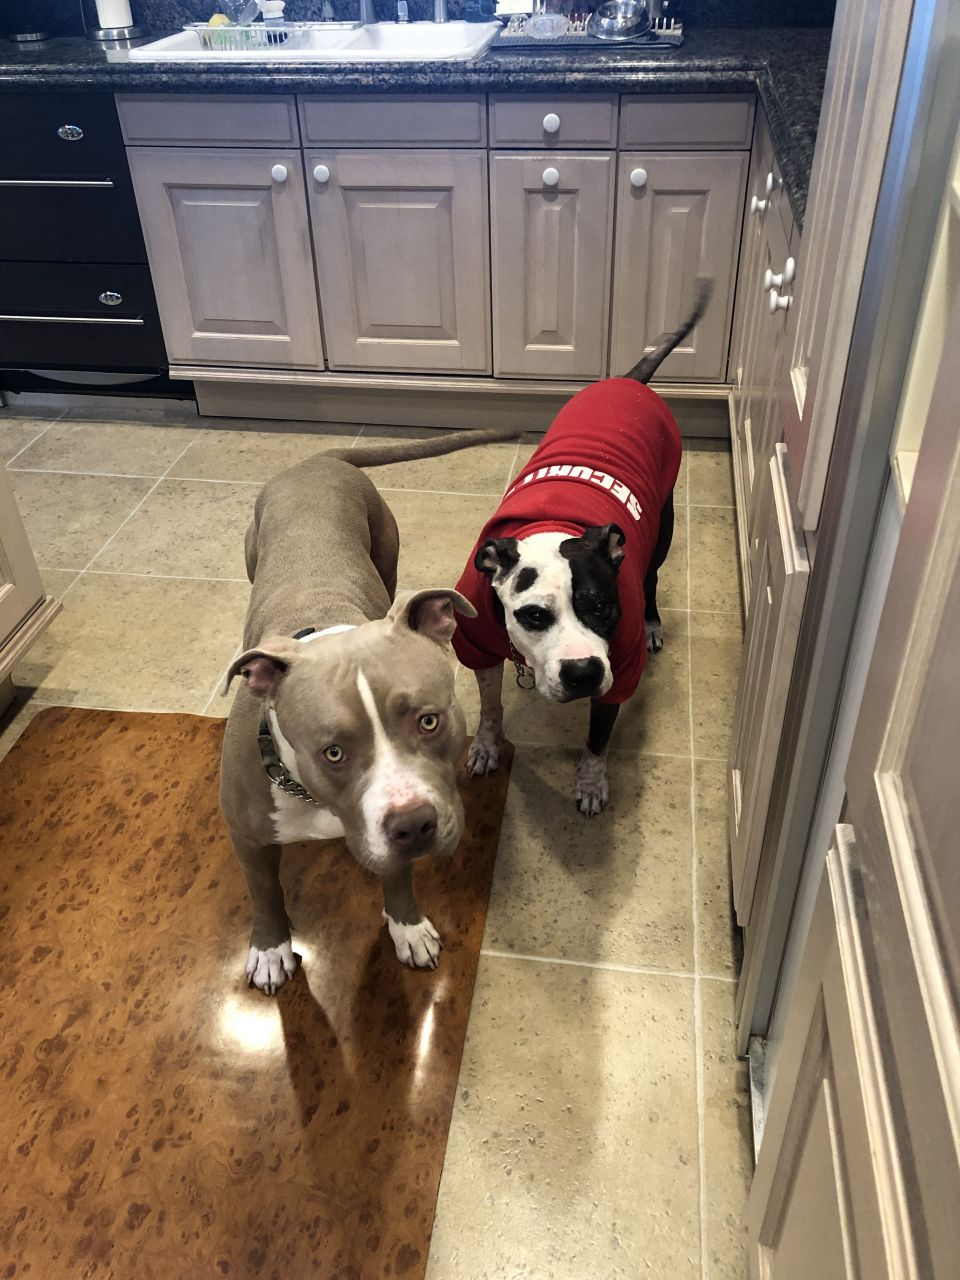 This is Lou and Bully.Lou is the brown Pittie in the front that I fostered for a few weeks. We got him neutered and vaccinated and found him a loving forever home. Bully is my Pittie, wearing the red hoodie. He has been the best dog any woman could ever ask for.